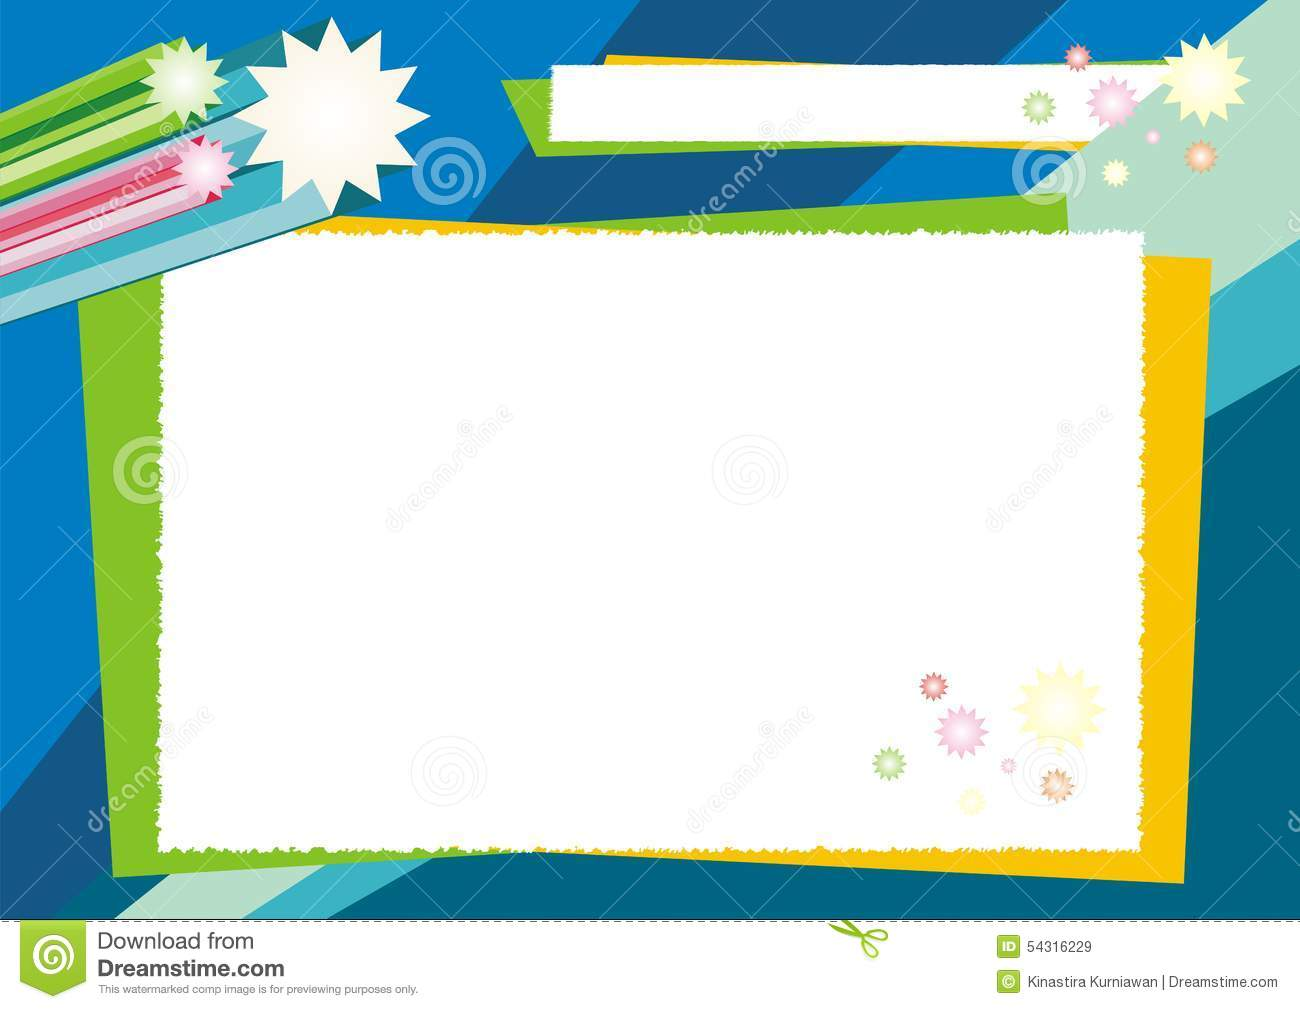 Boy And Girl Wallpaper Full Hd Royalty Free Stock Images Kid Diploma Design New And